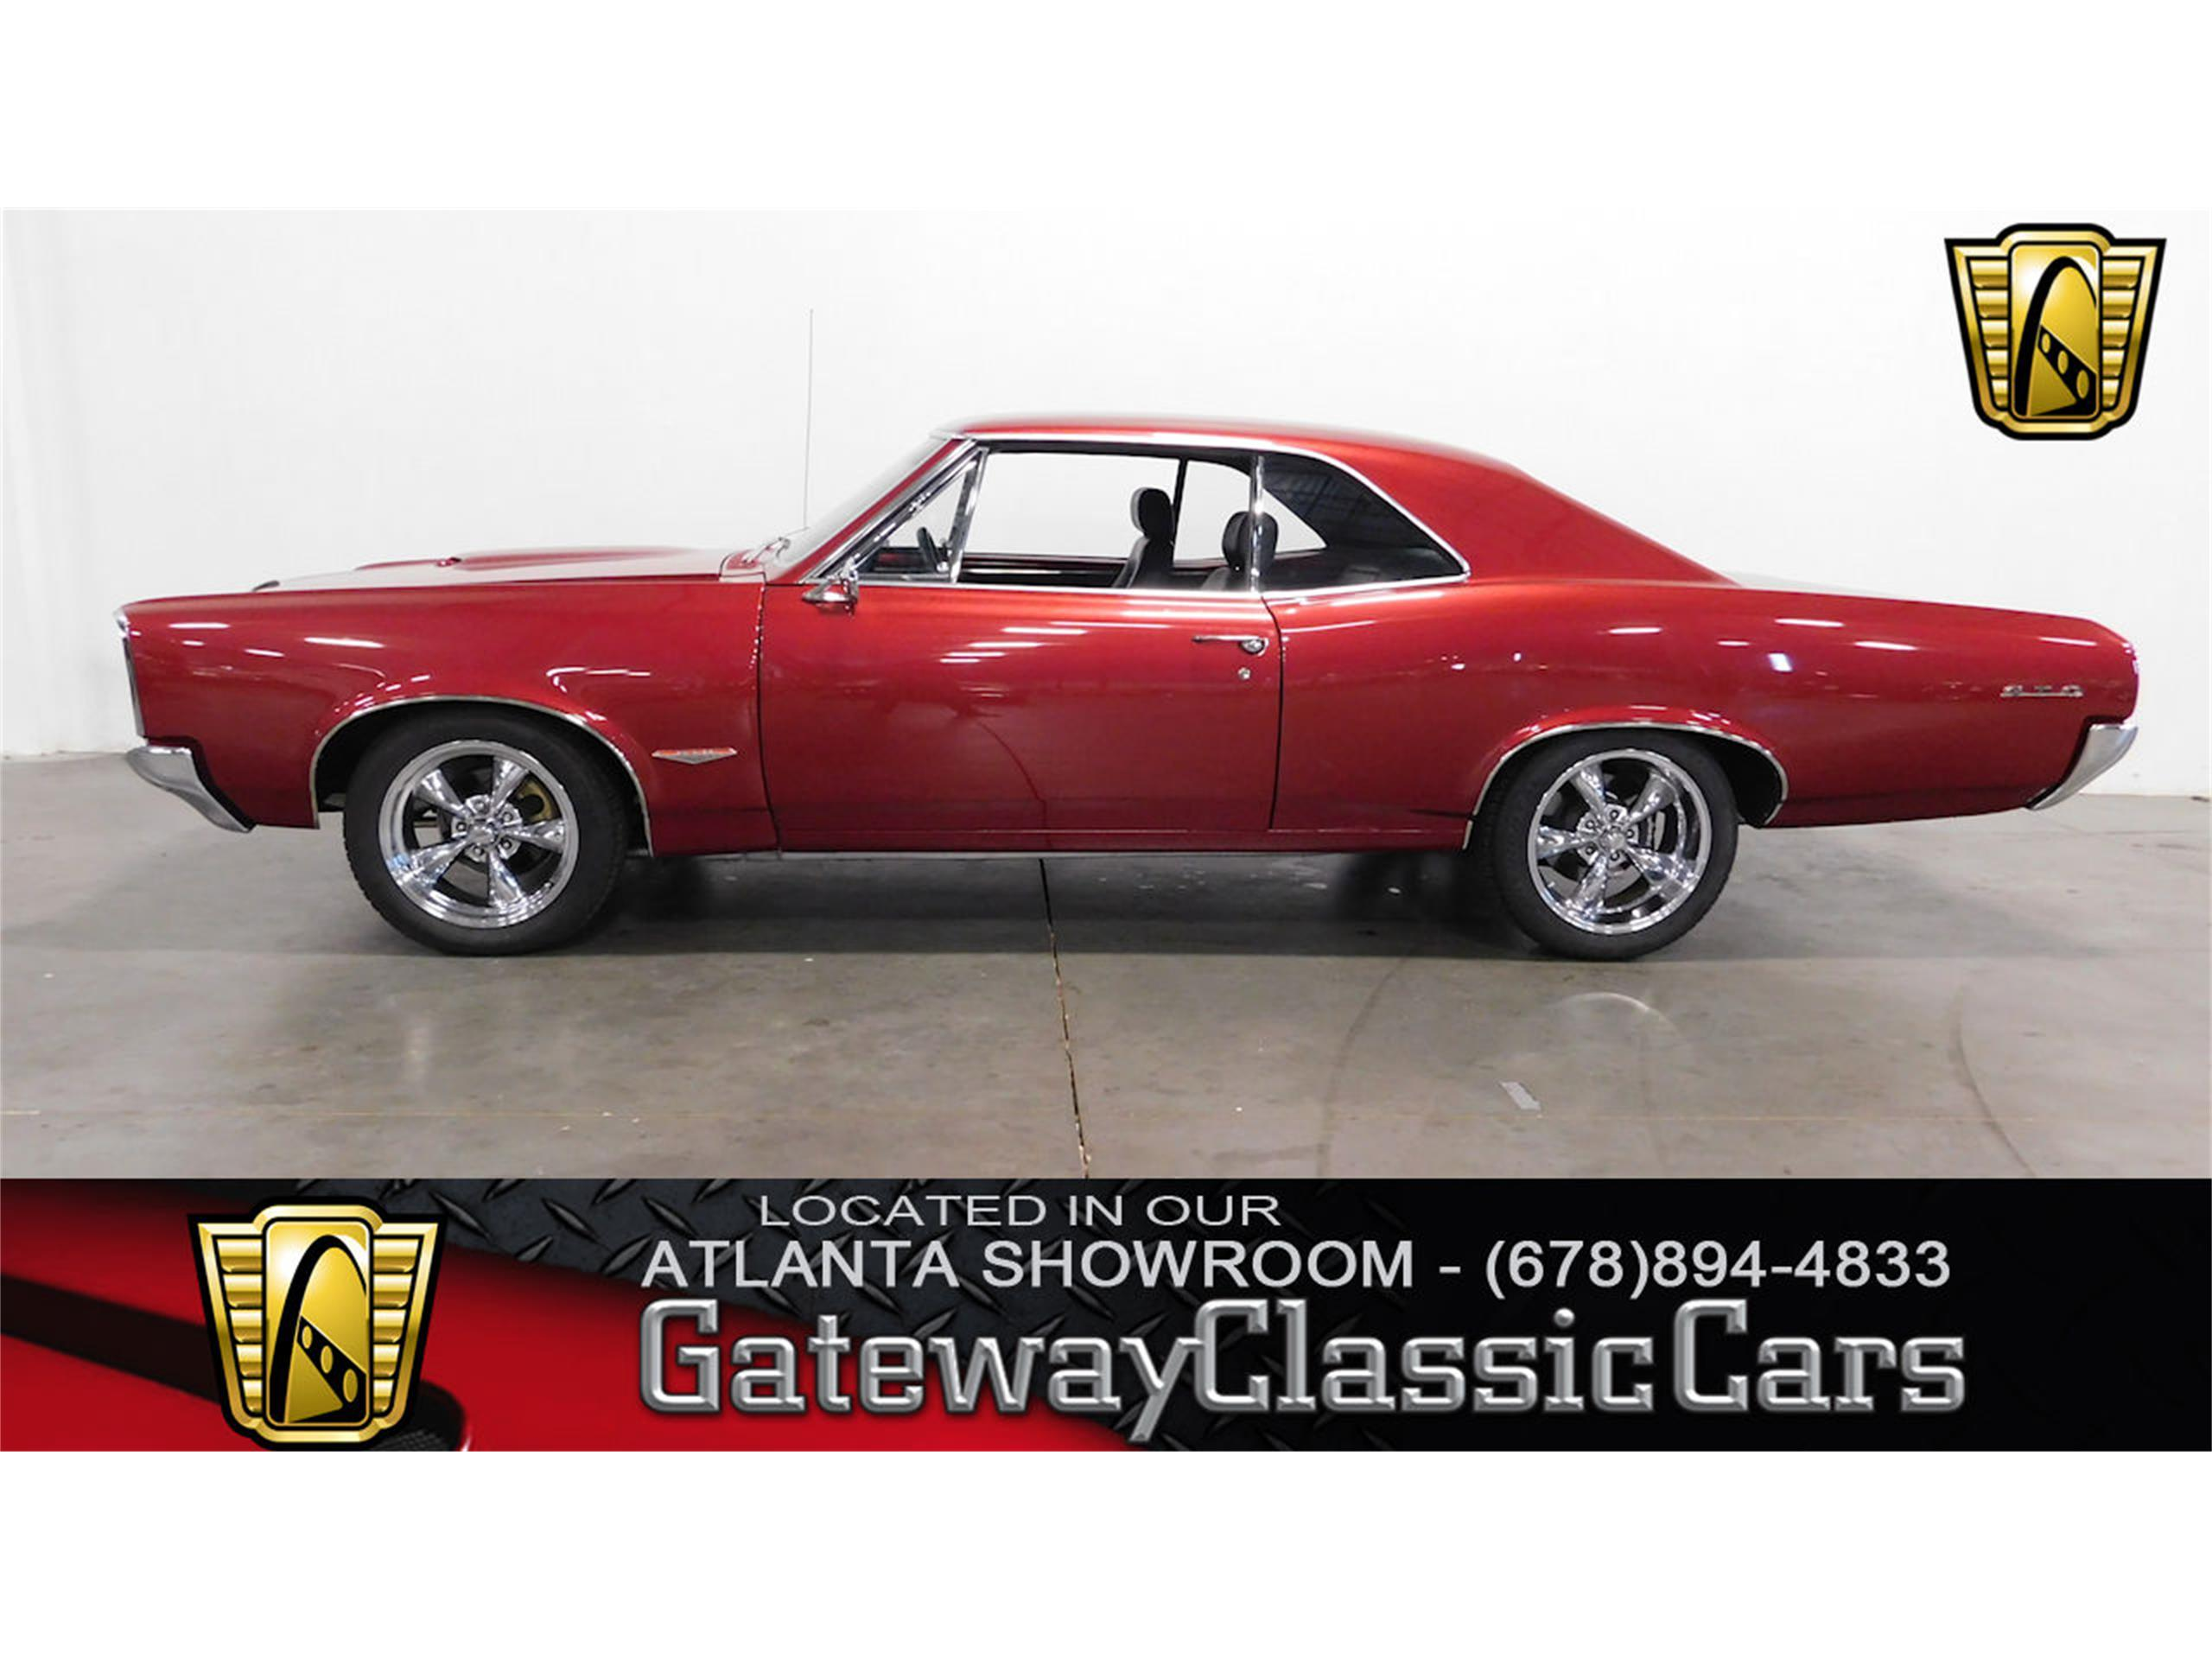 66 Gto Parts Diagram Electrical Wiring Diagrams Ls2 Engine Of The Whole Car Product U2022 1966 Jack